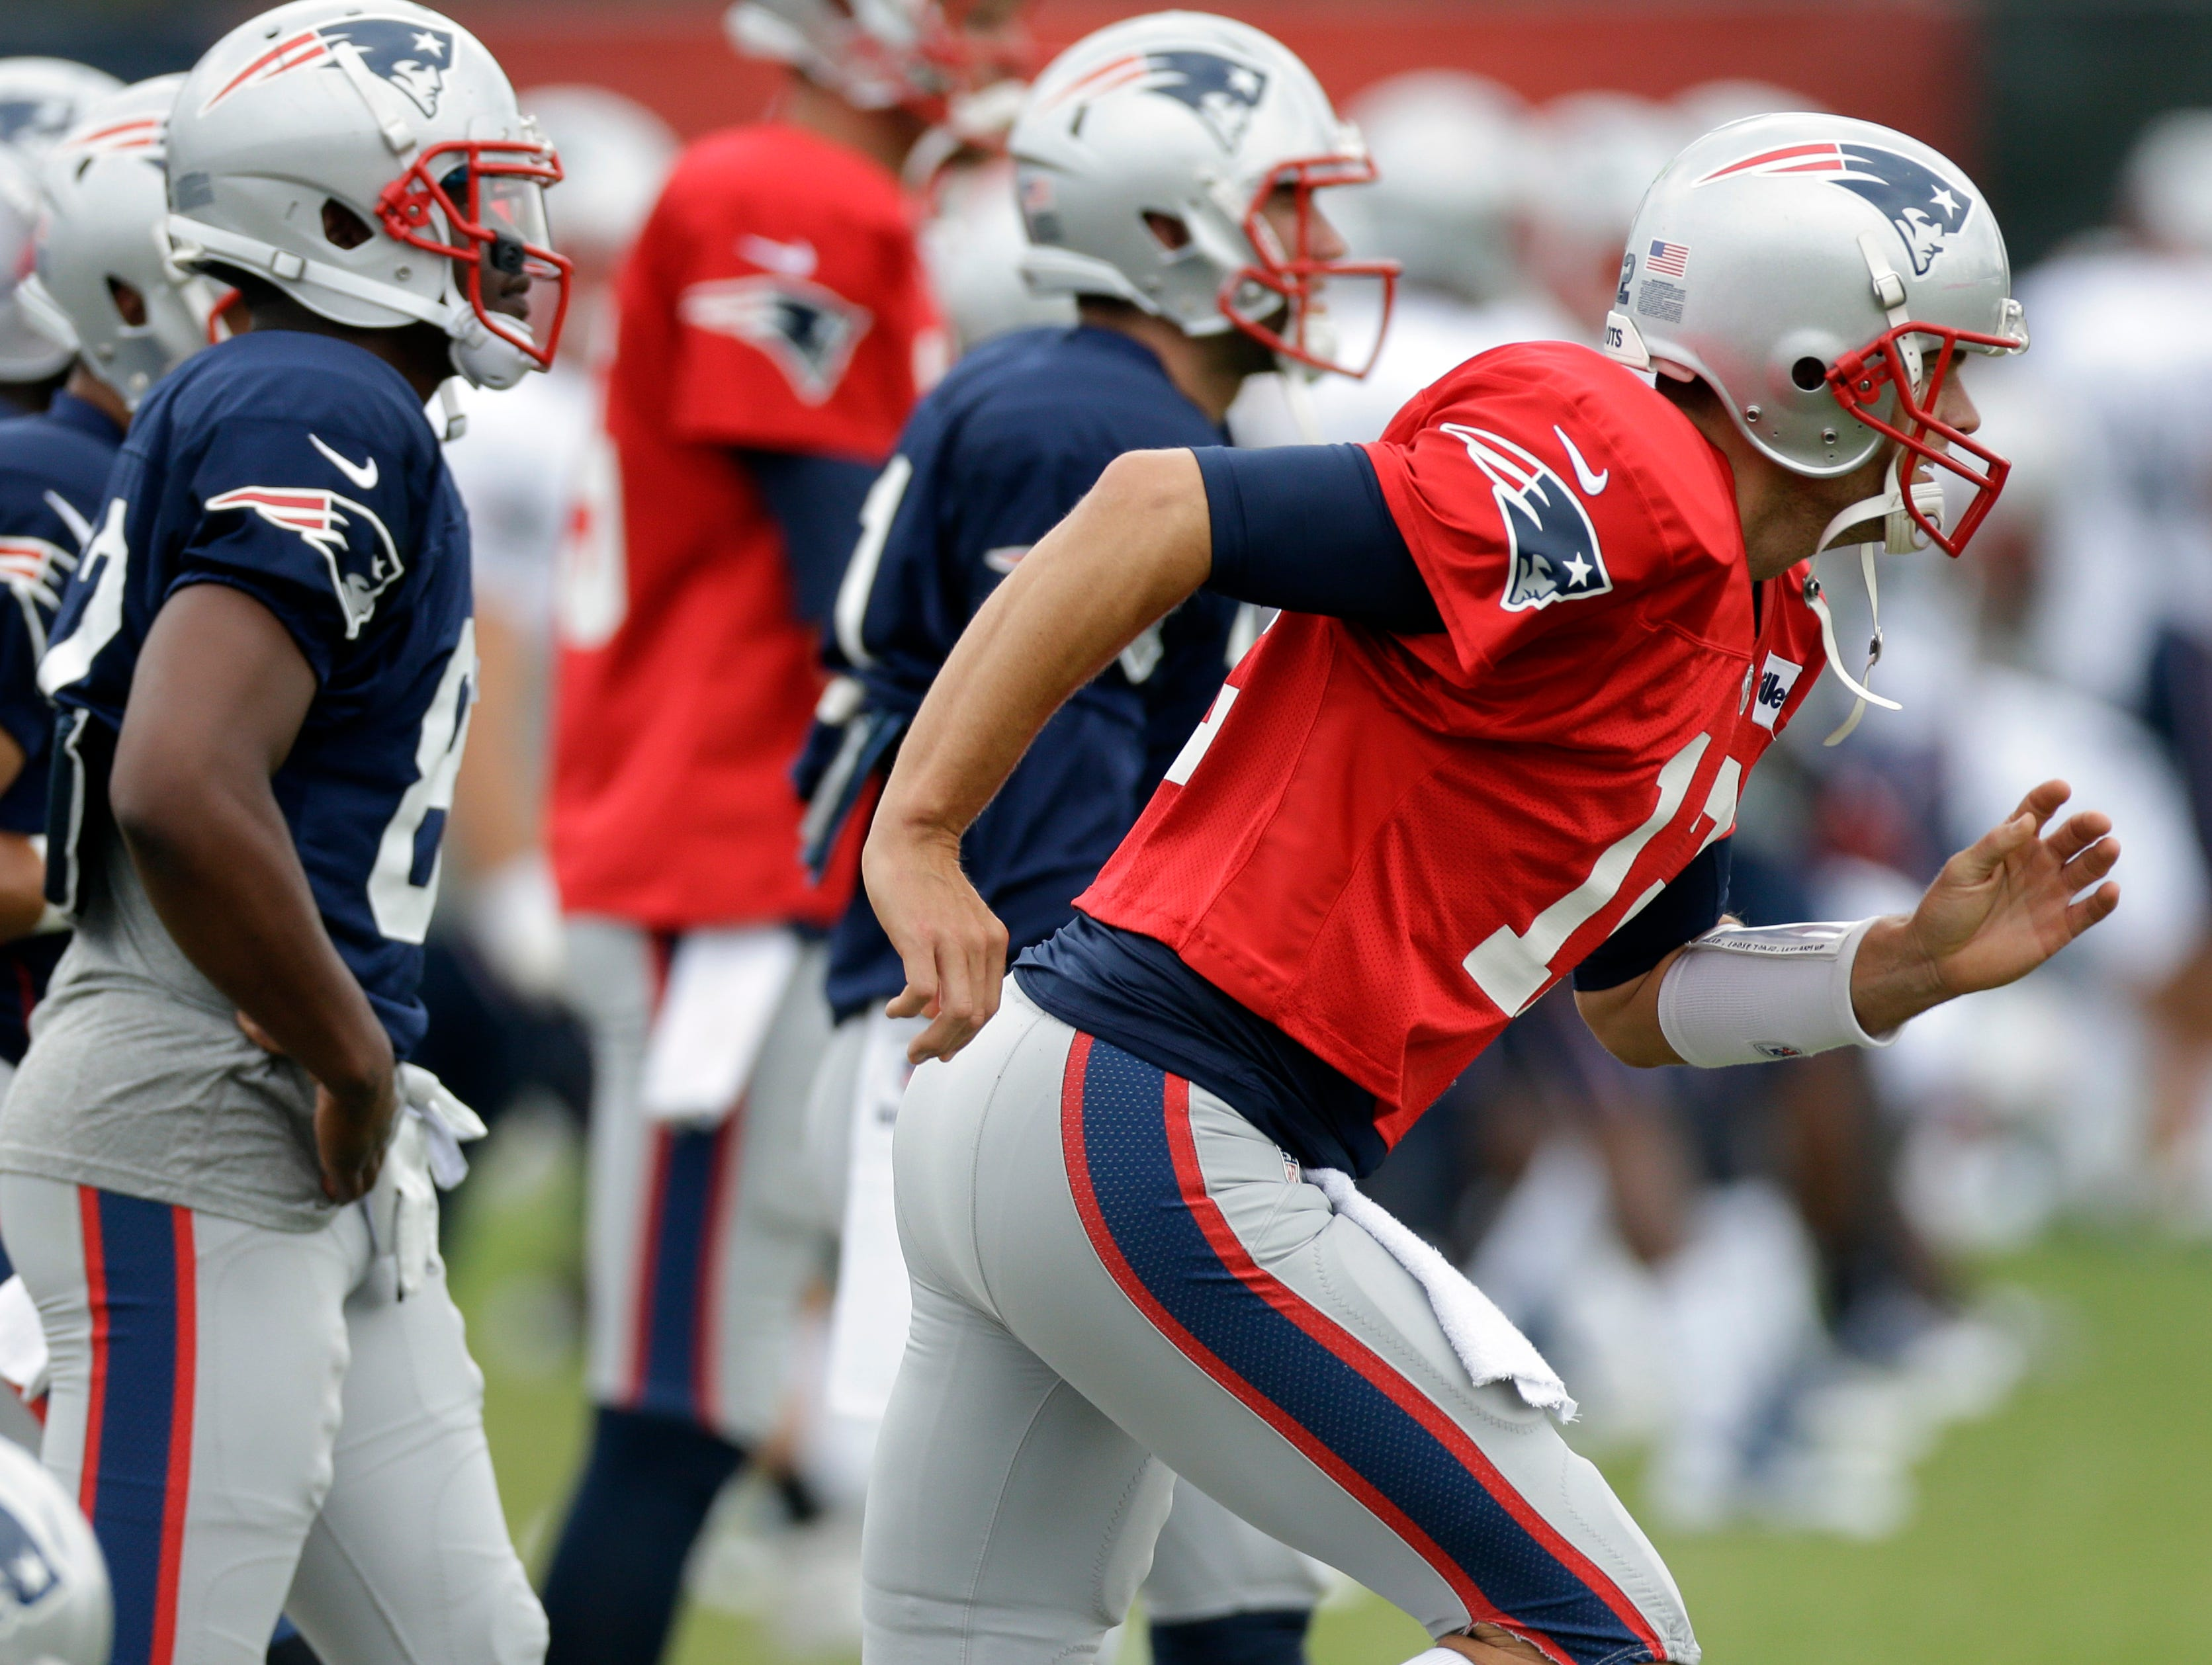 Patriots QB Tom Brady is on the run during a joint practice with the Eagles in Philadelphia on Aug. 7.